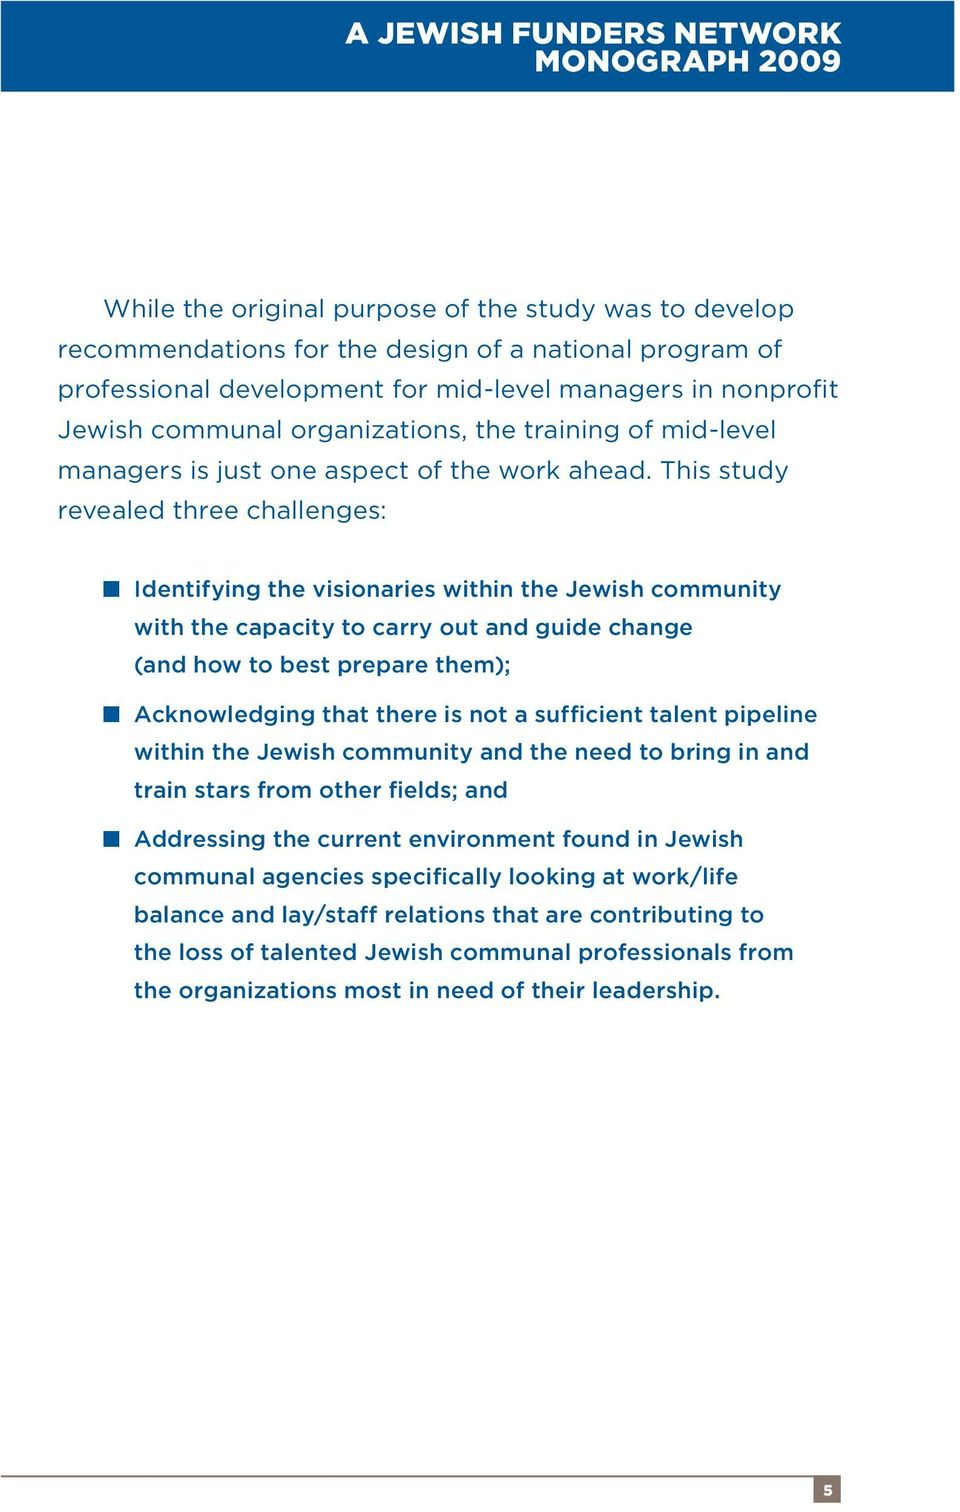 This study revealed three challenges: Identifying the visionaries within the Jewish community with the capacity to carry out and guide change (and how to best prepare them); Acknowledging that there